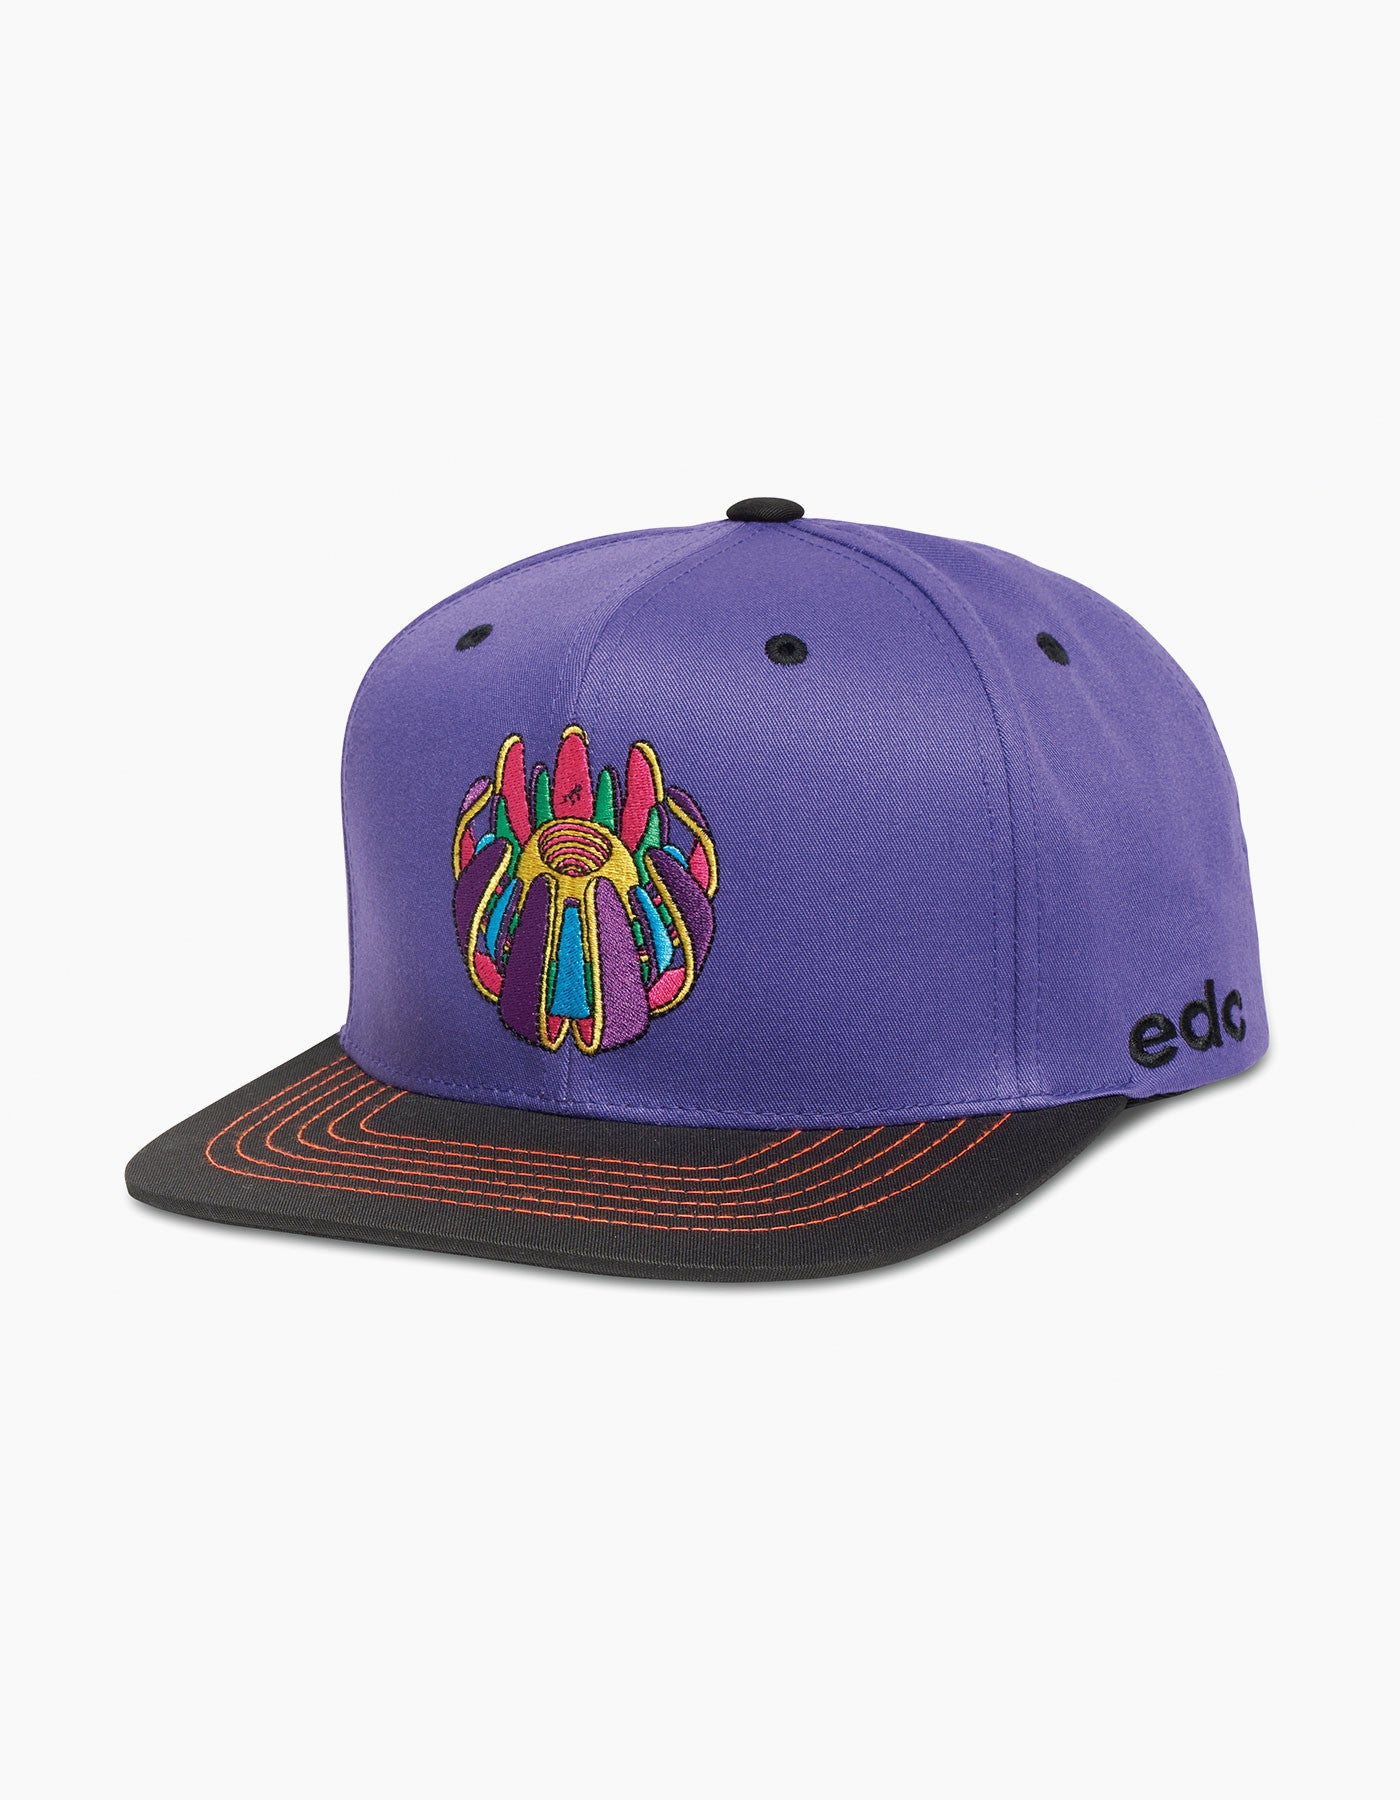 EDC Future Flower Cap Purple